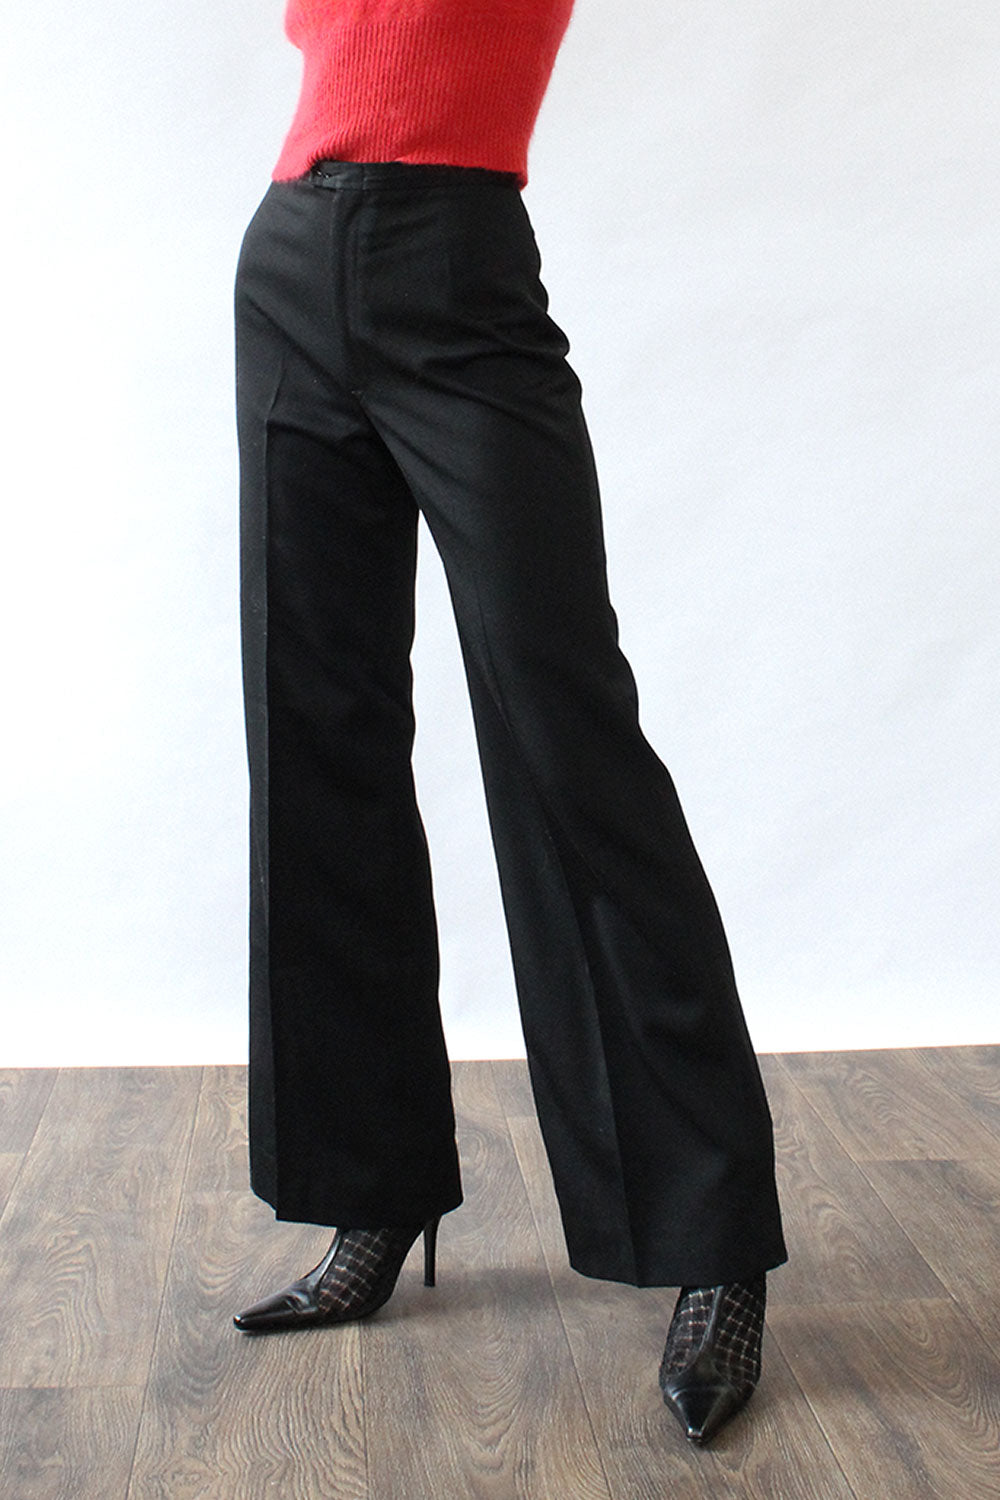 Sir For Her Flares S